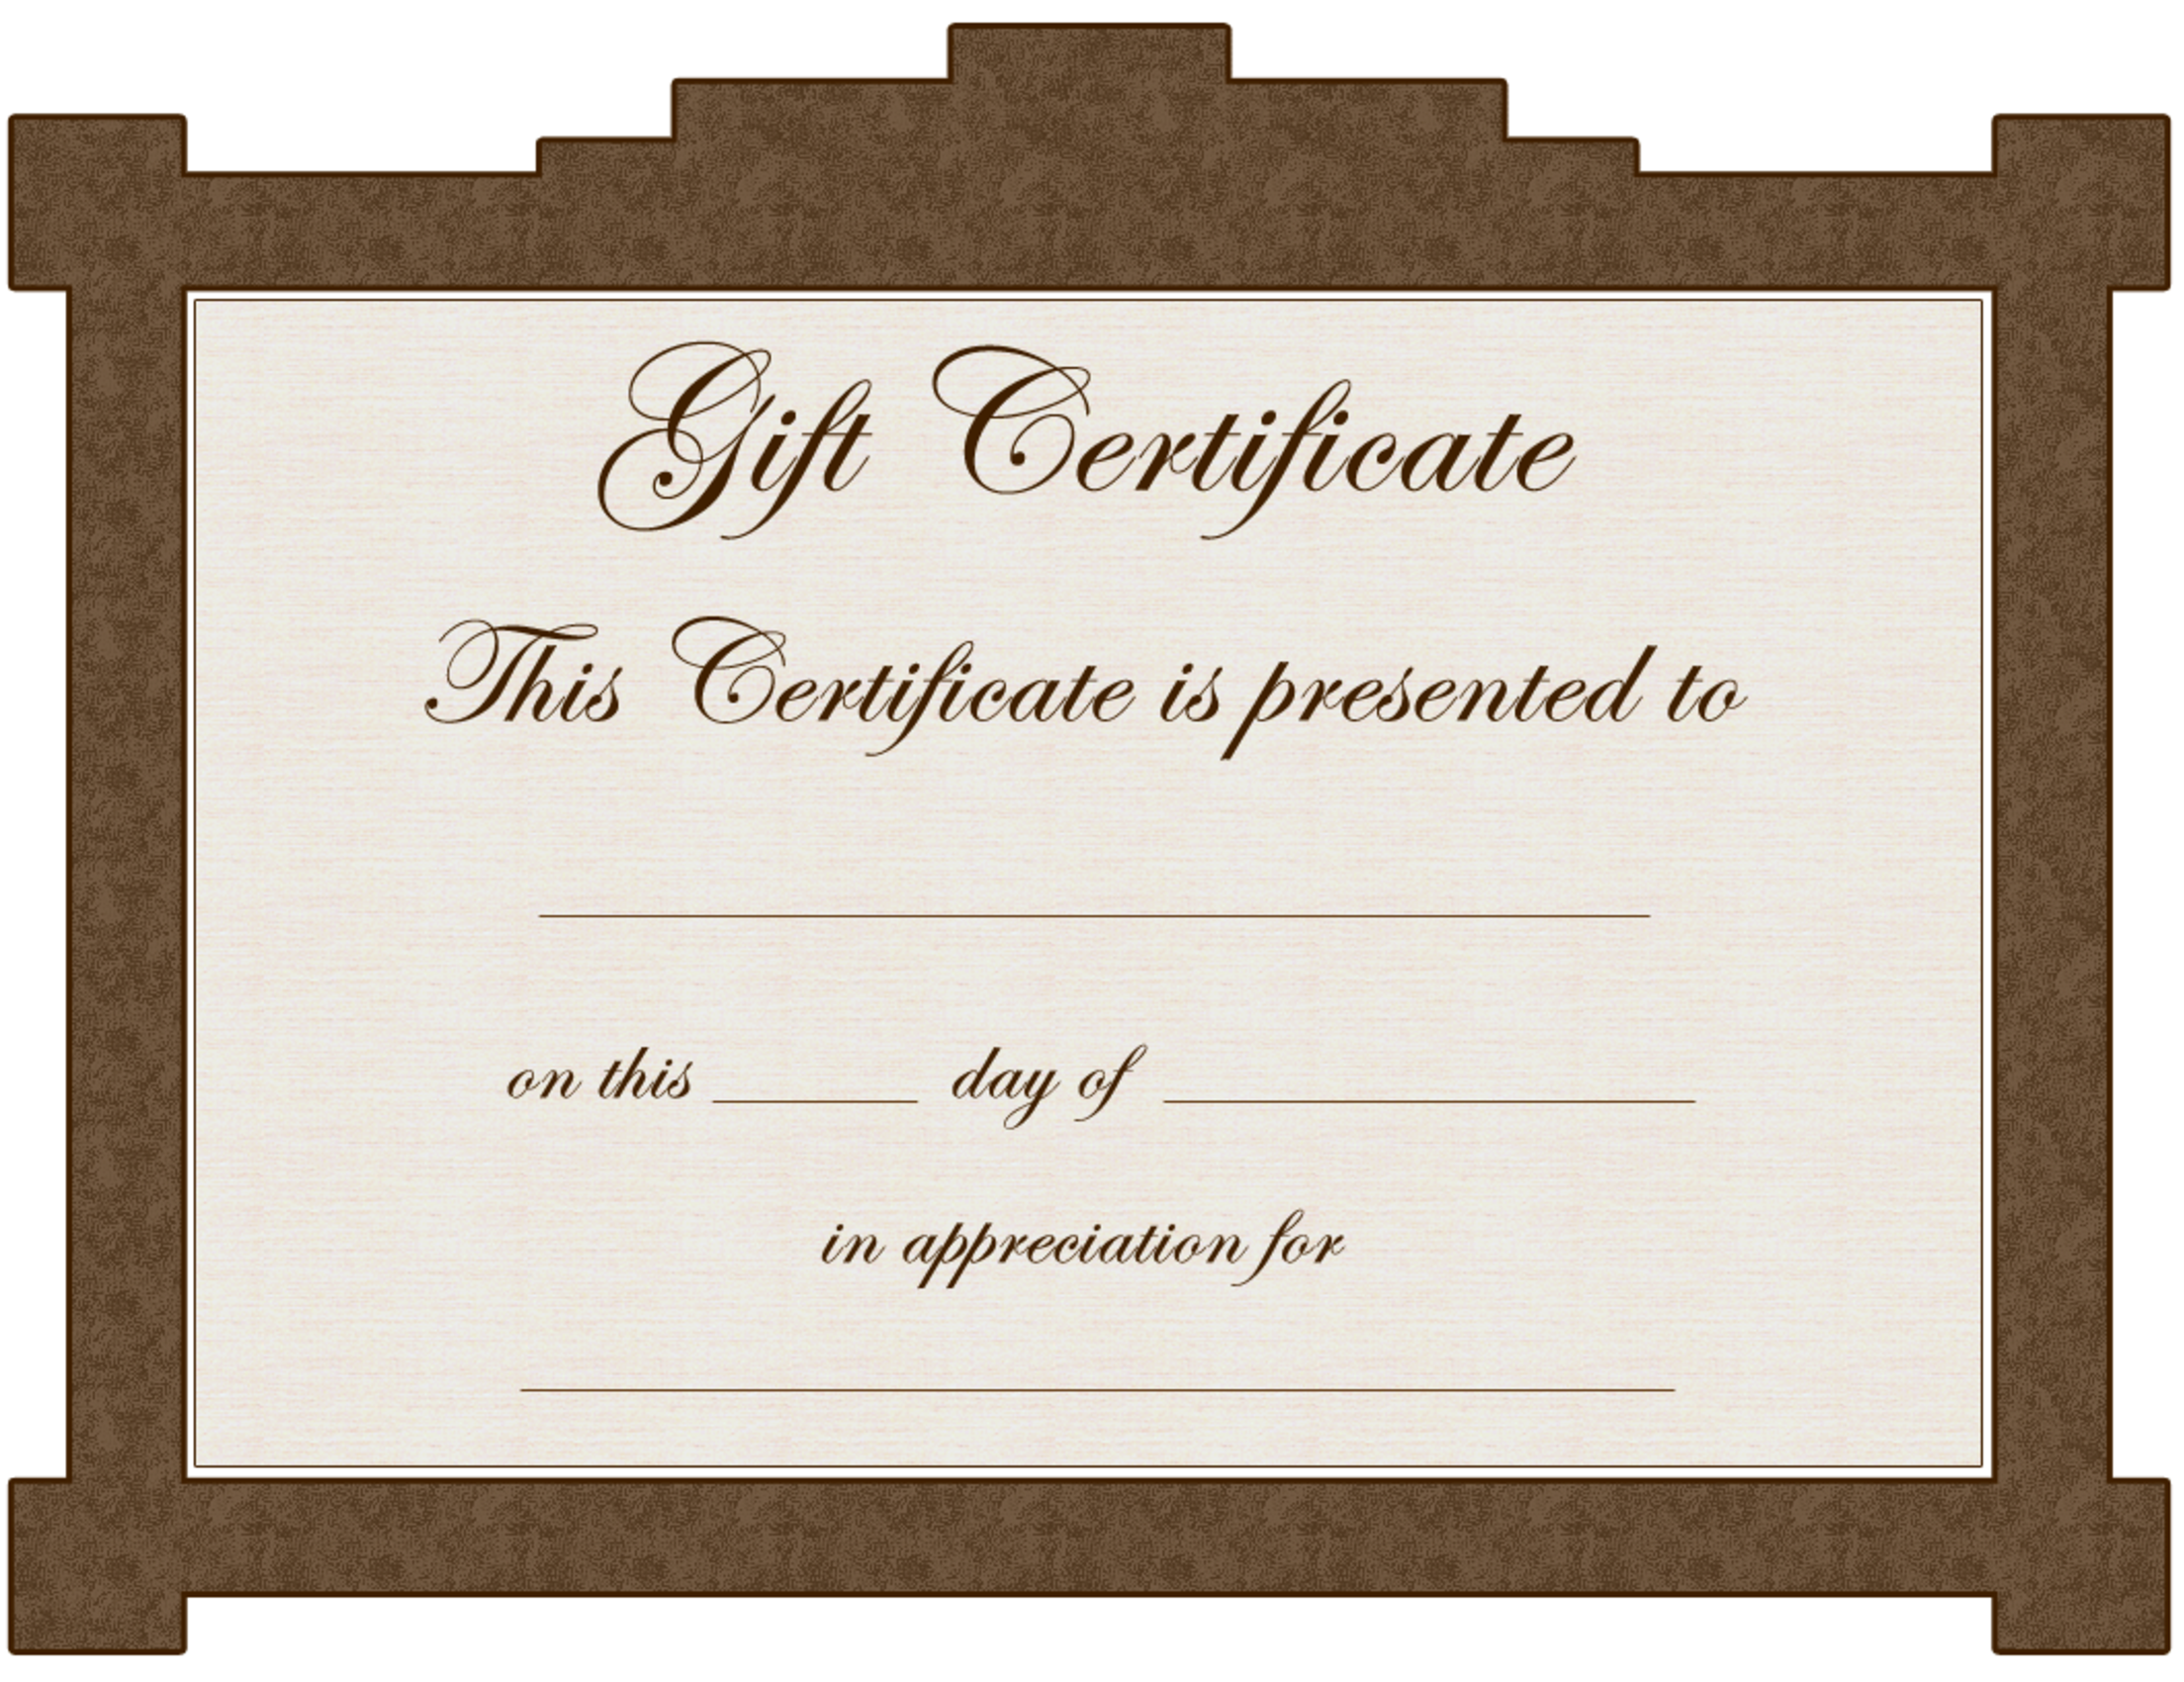 Blank Certificates Templates Free Download certificate template – Christmas Gift Card Templates Free